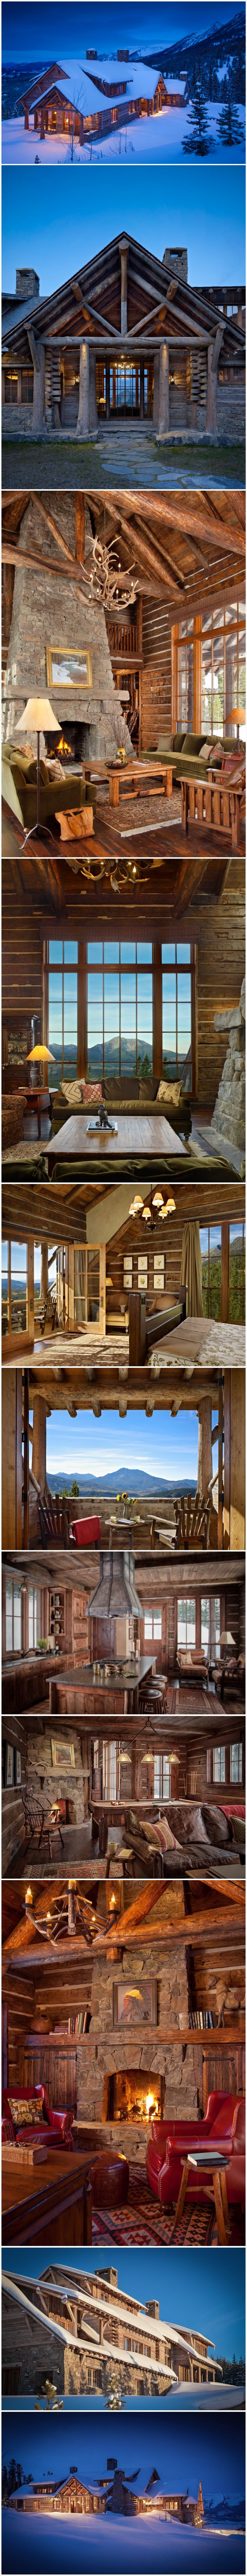 Custom Log Home Architecture by Miller & Co.